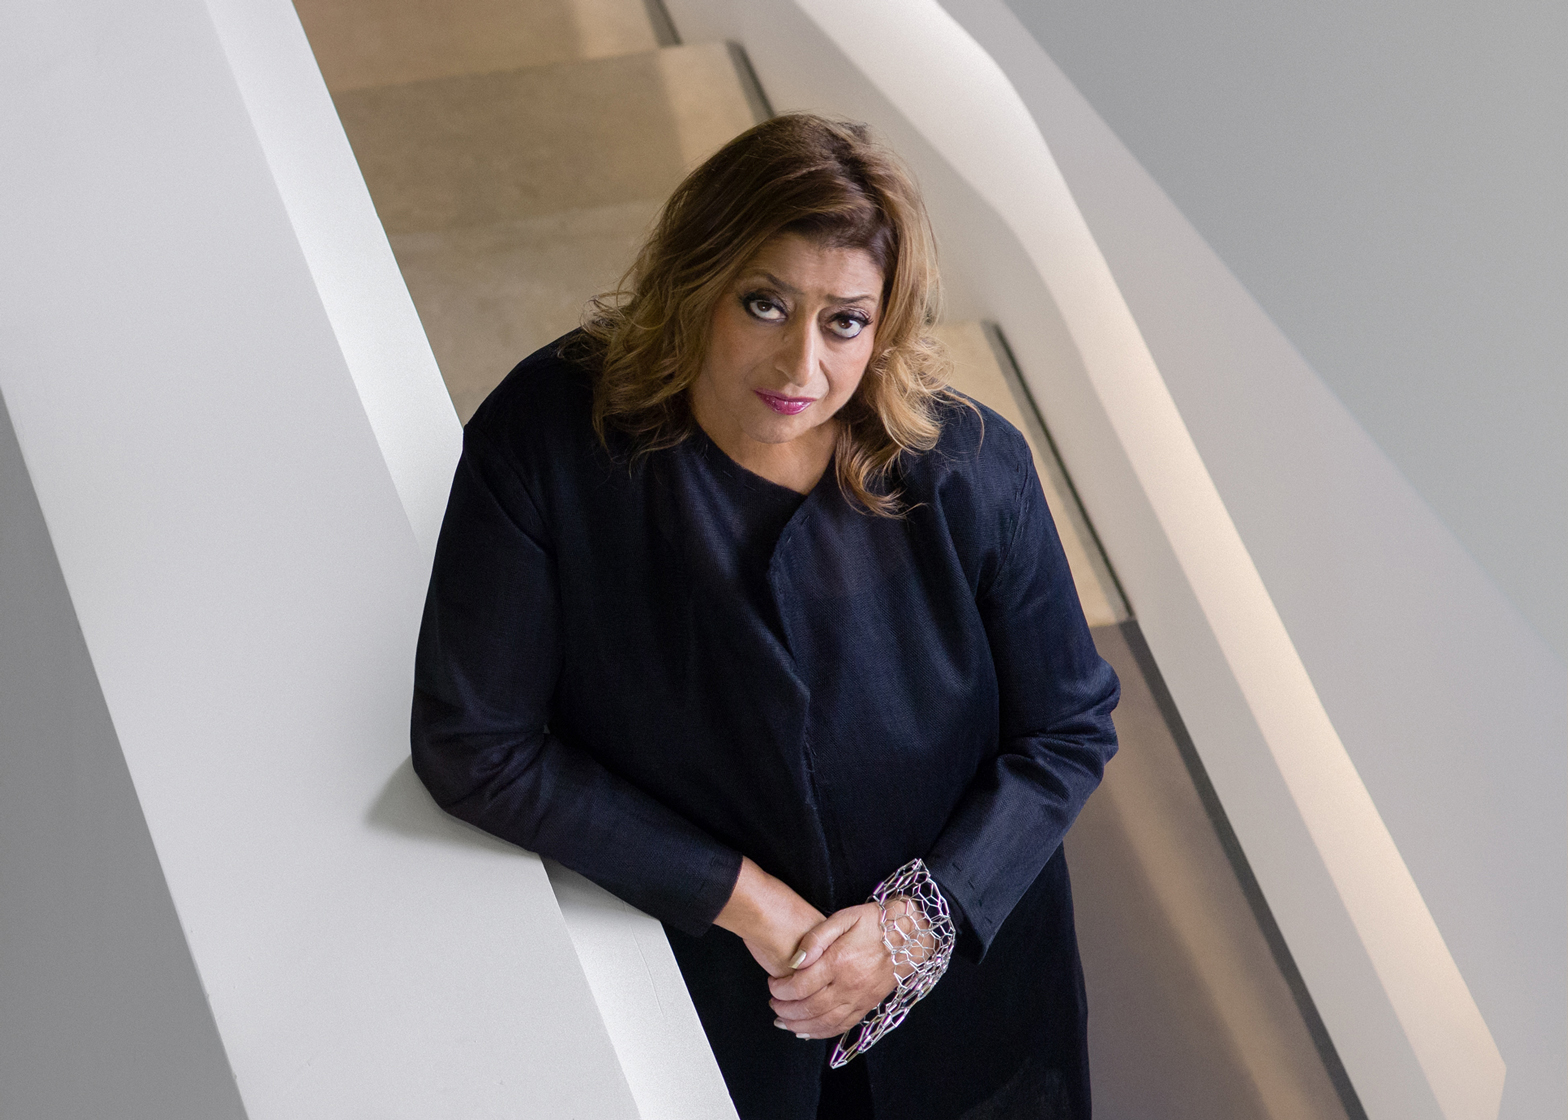 Zaha Hadid a precious friend and colleague has died